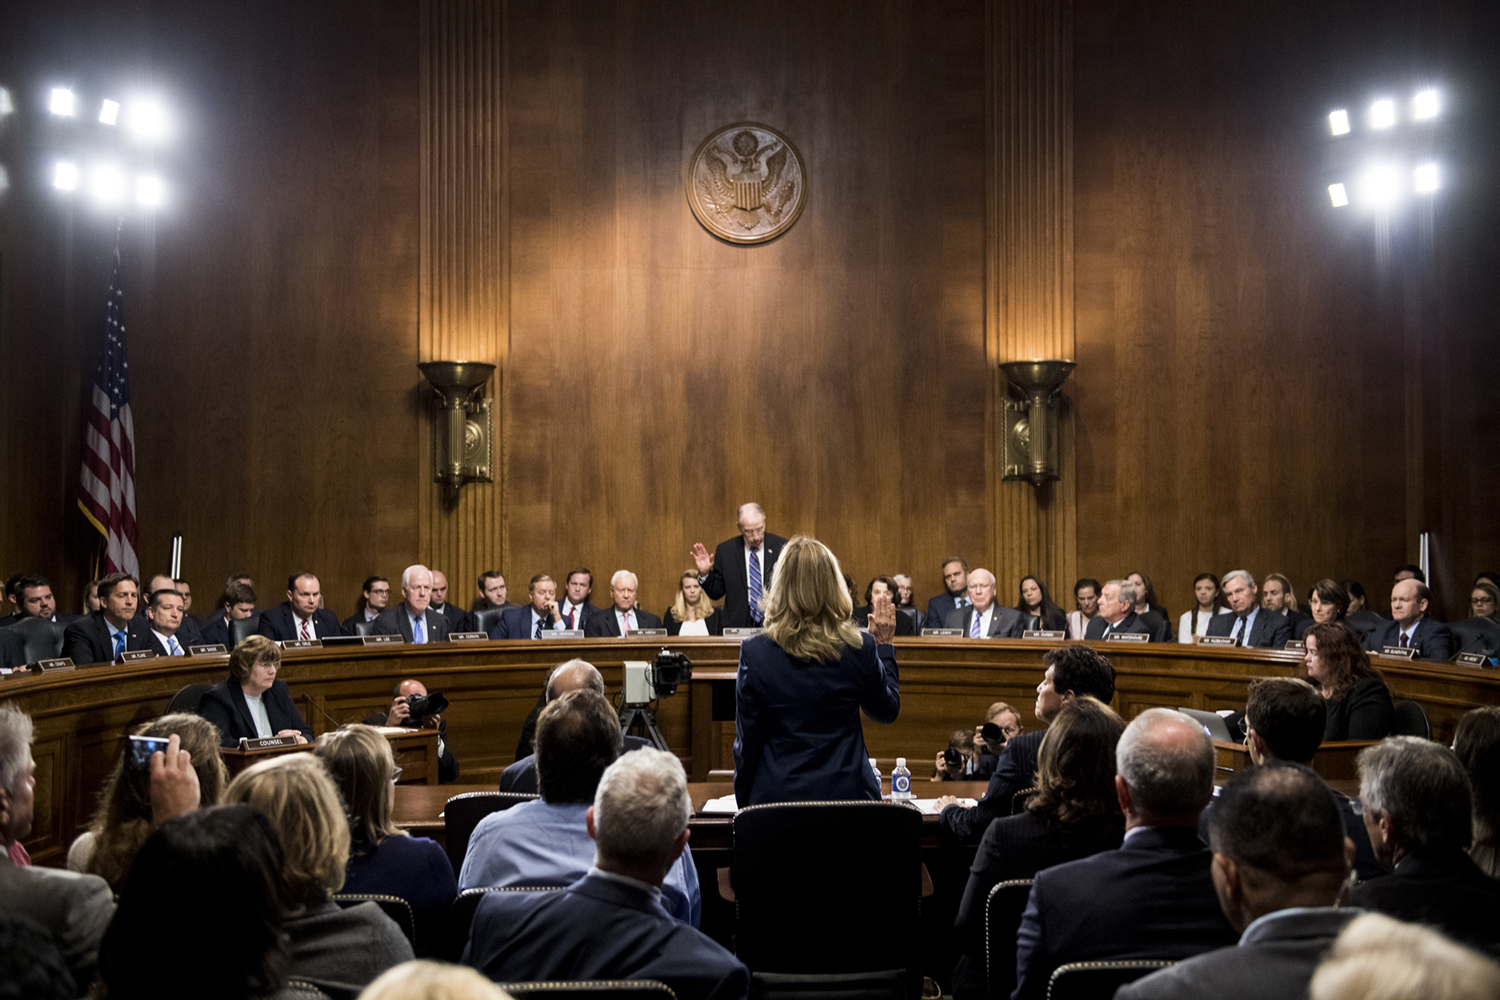 Dr. Christine Blasey Ford is sworn in by chairman Chuck Grassley (R-Iowa) on Thursday, Sept. 27, 2018, during the Senate Judiciary Committee hearing on the nomination of Brett M. Kavanaugh to be an associate justice of the Supreme Court of the United States, focusing on allegations of sexual assault by Kavanaugh against Christine Blasey Ford in the early 1980s. (Tom Williams/Pool/CQ Roll Call/Abaca Press/TNS)